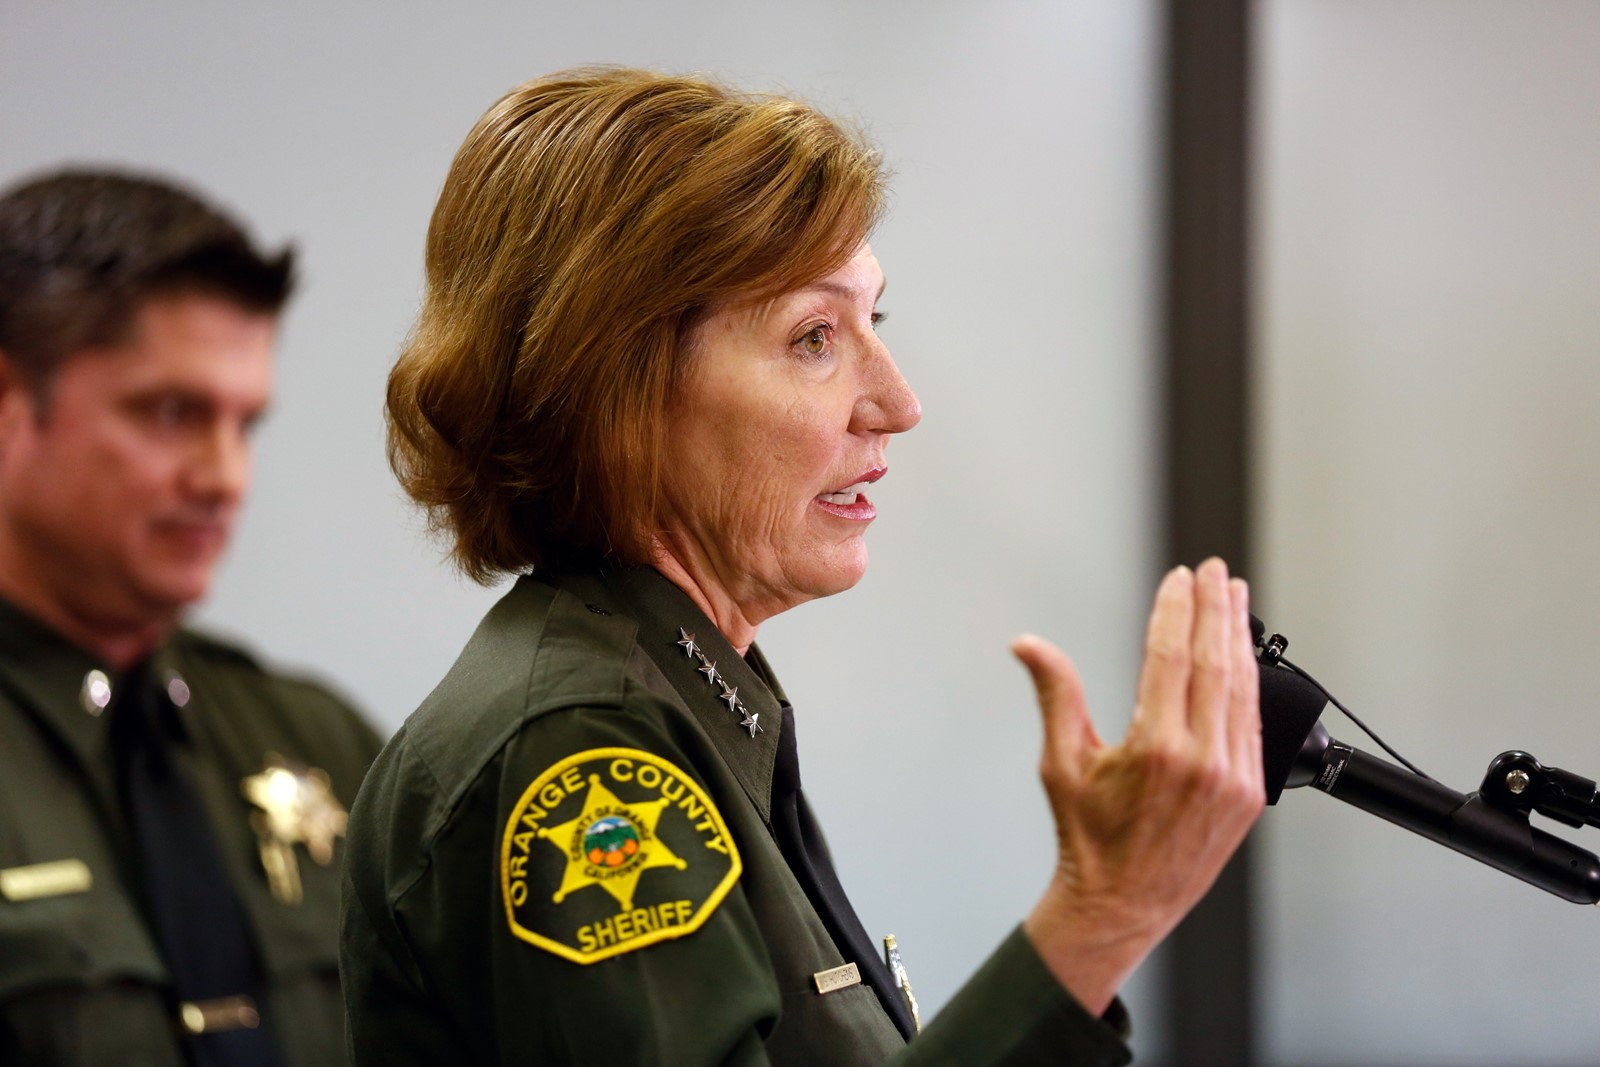 Orange County Sheriff Sandra Hutchens is shown in a file photo. (Credit: Gary Coronado / Los Angeles Times)